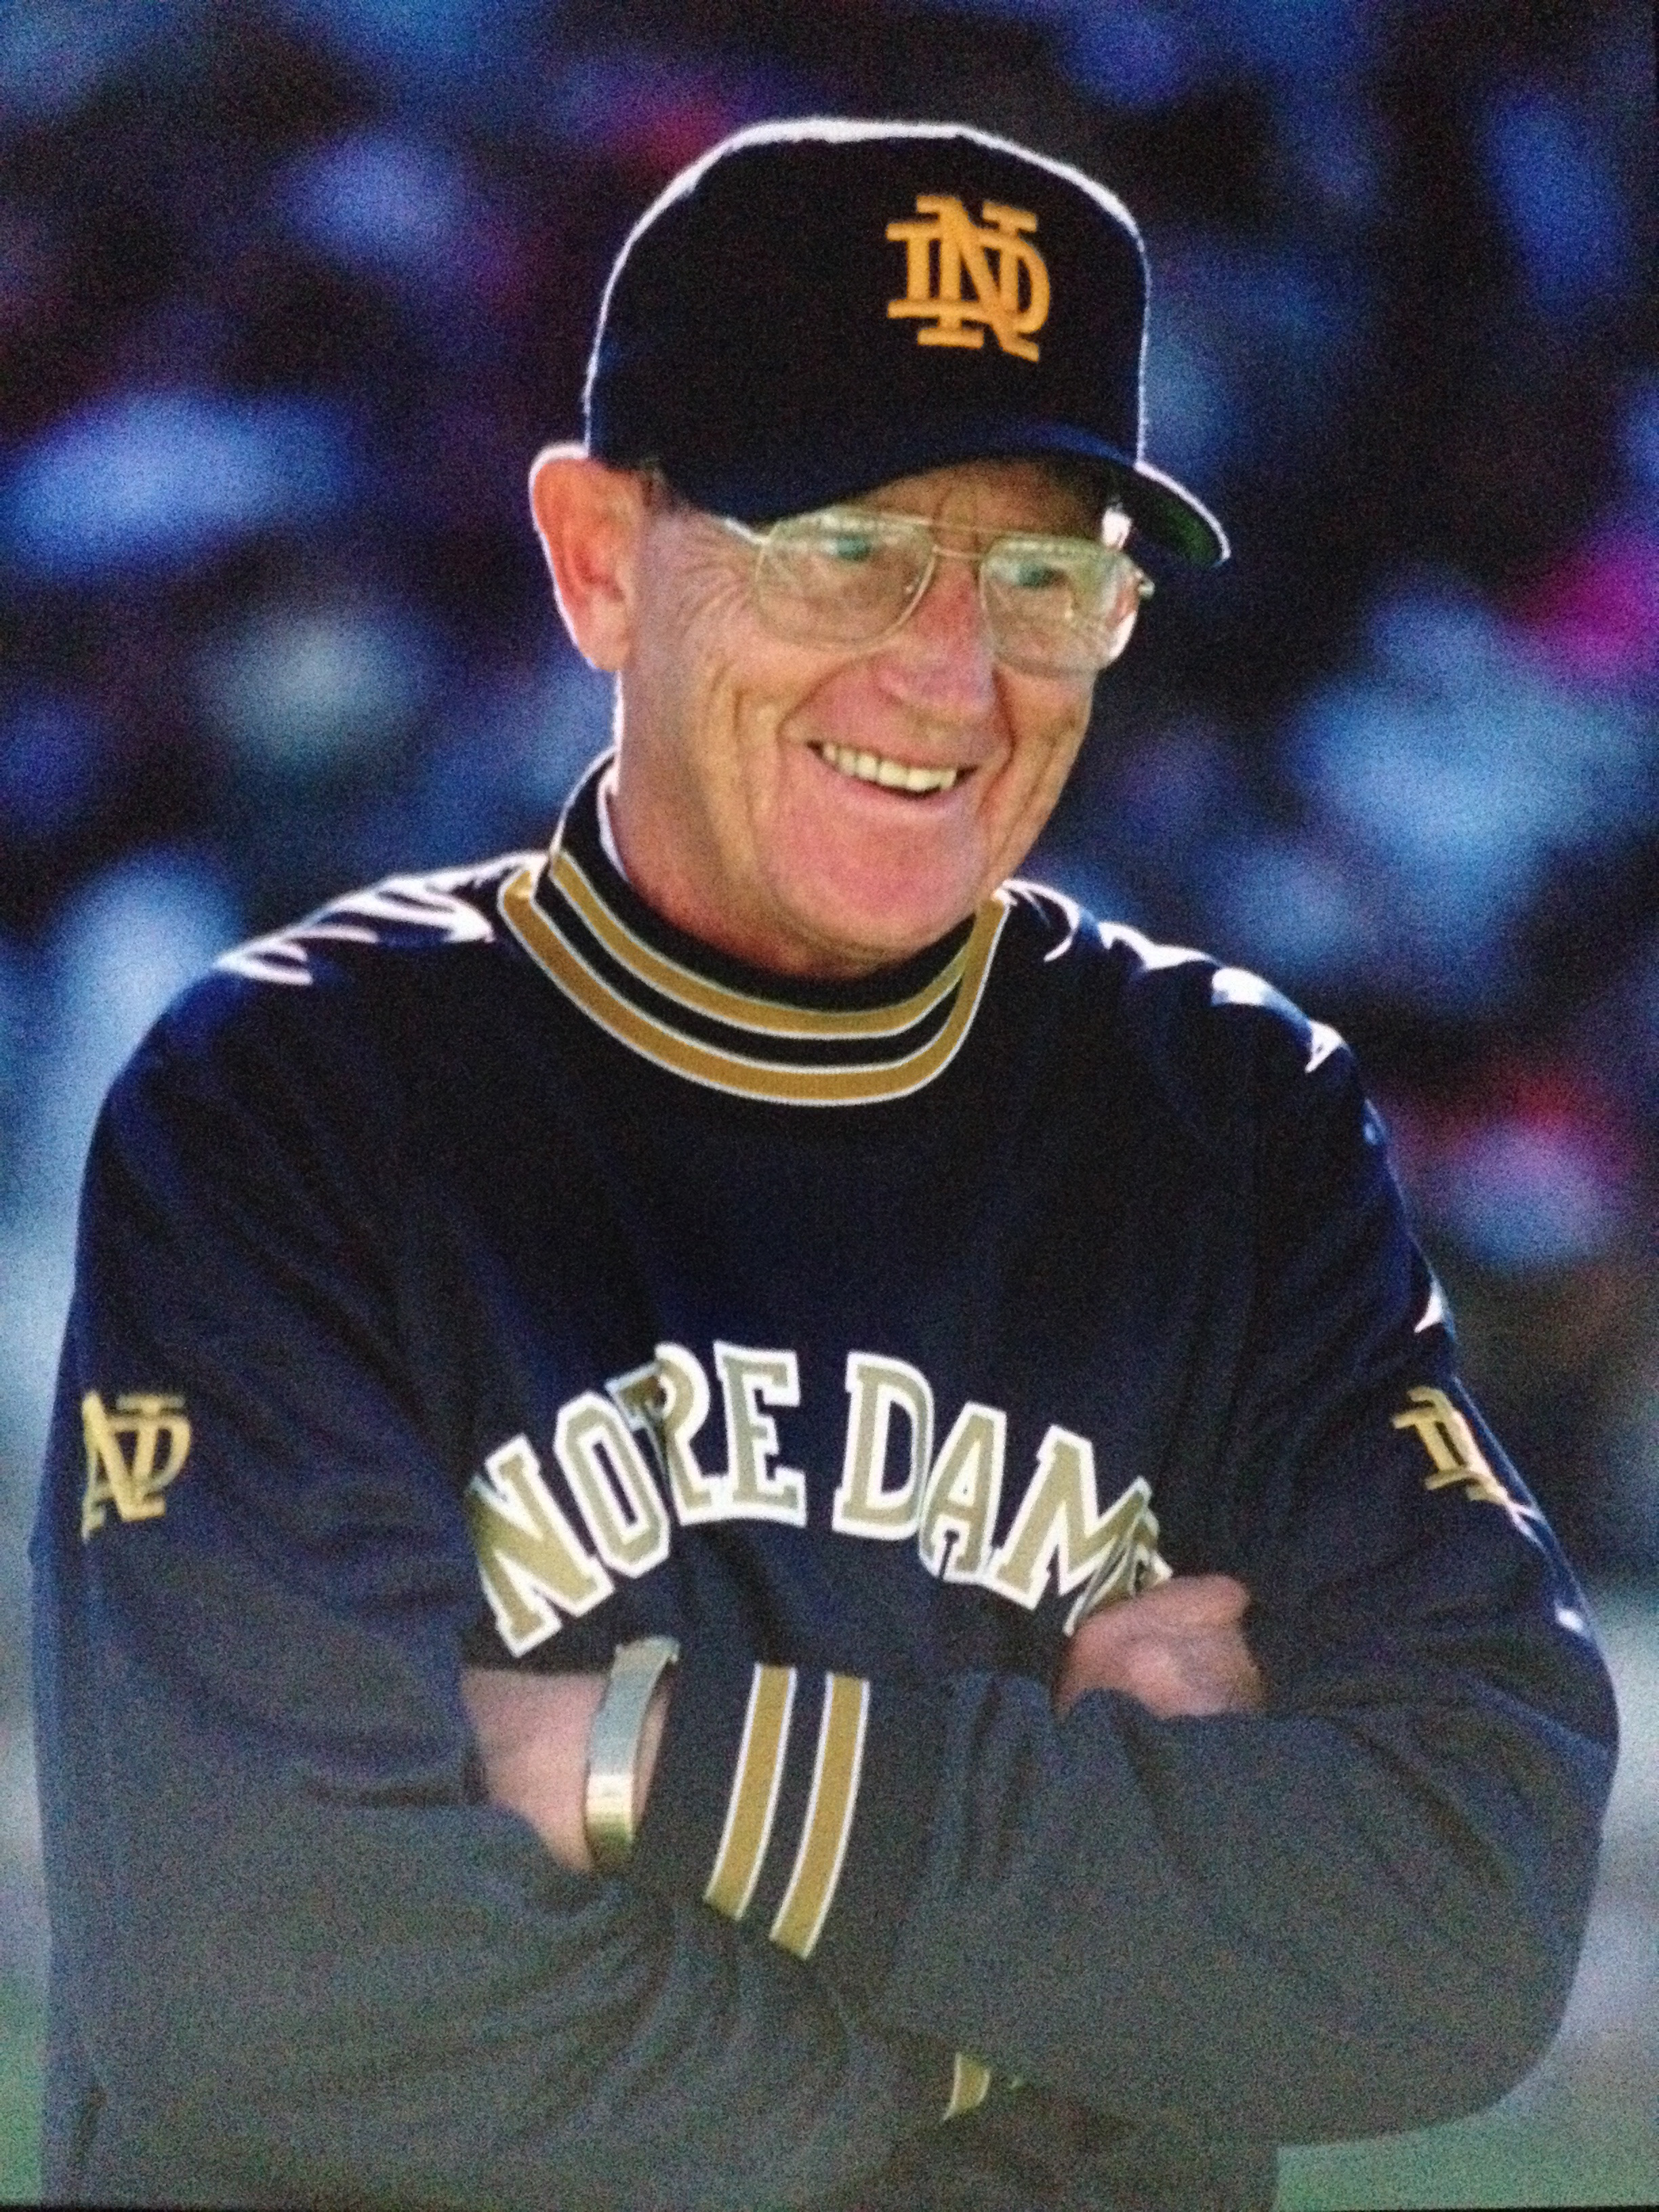 Feb-21-Head-Lou-Holtz1-